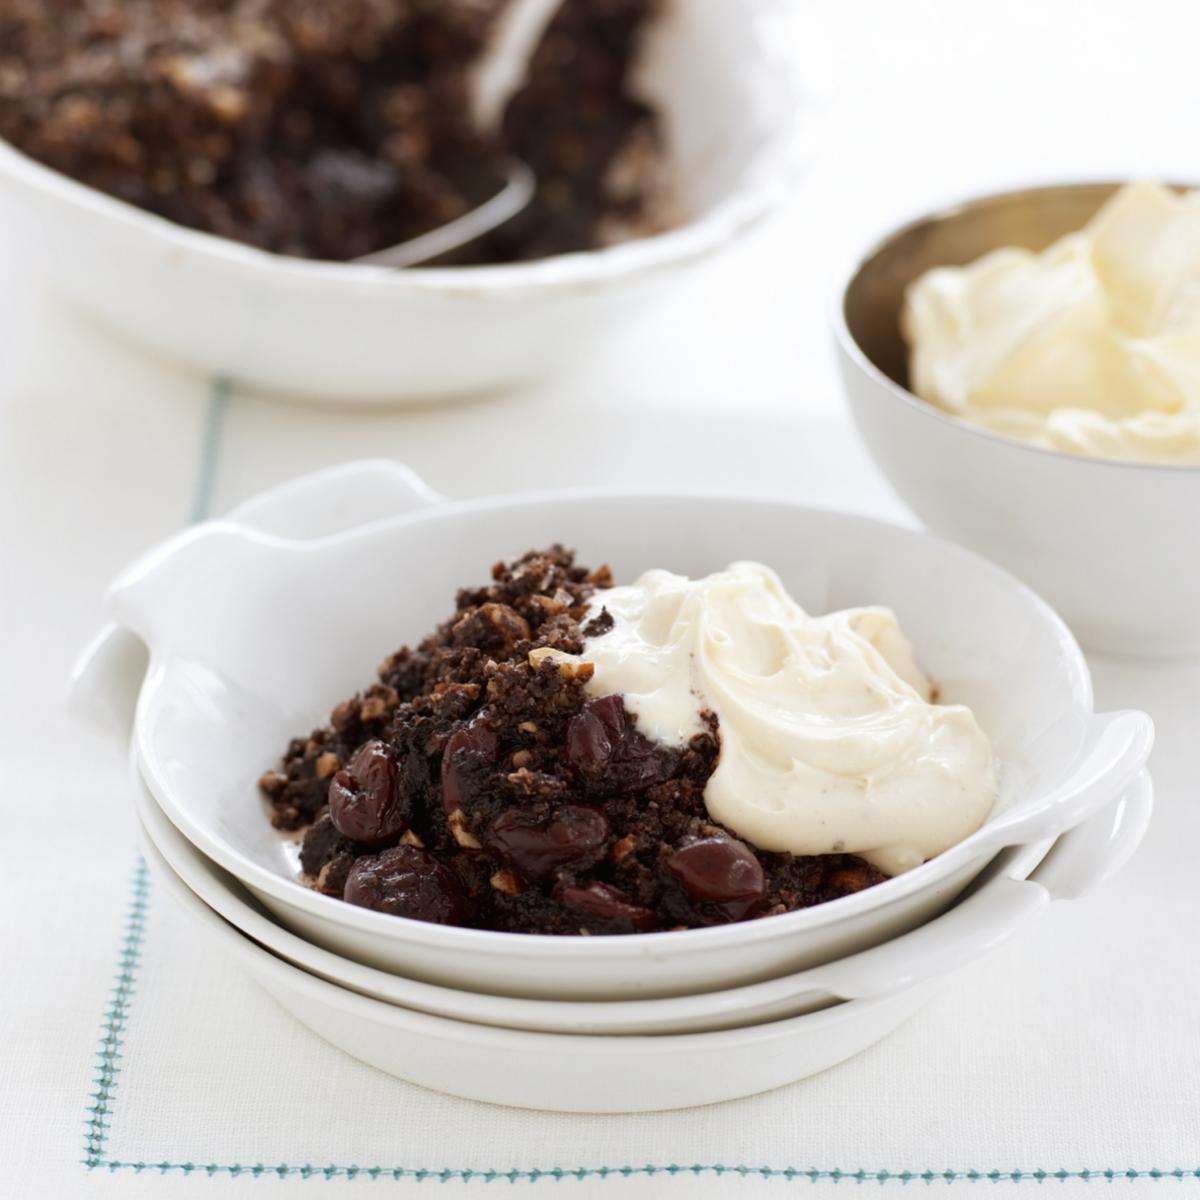 Happy chocolate and sour cherry crumble